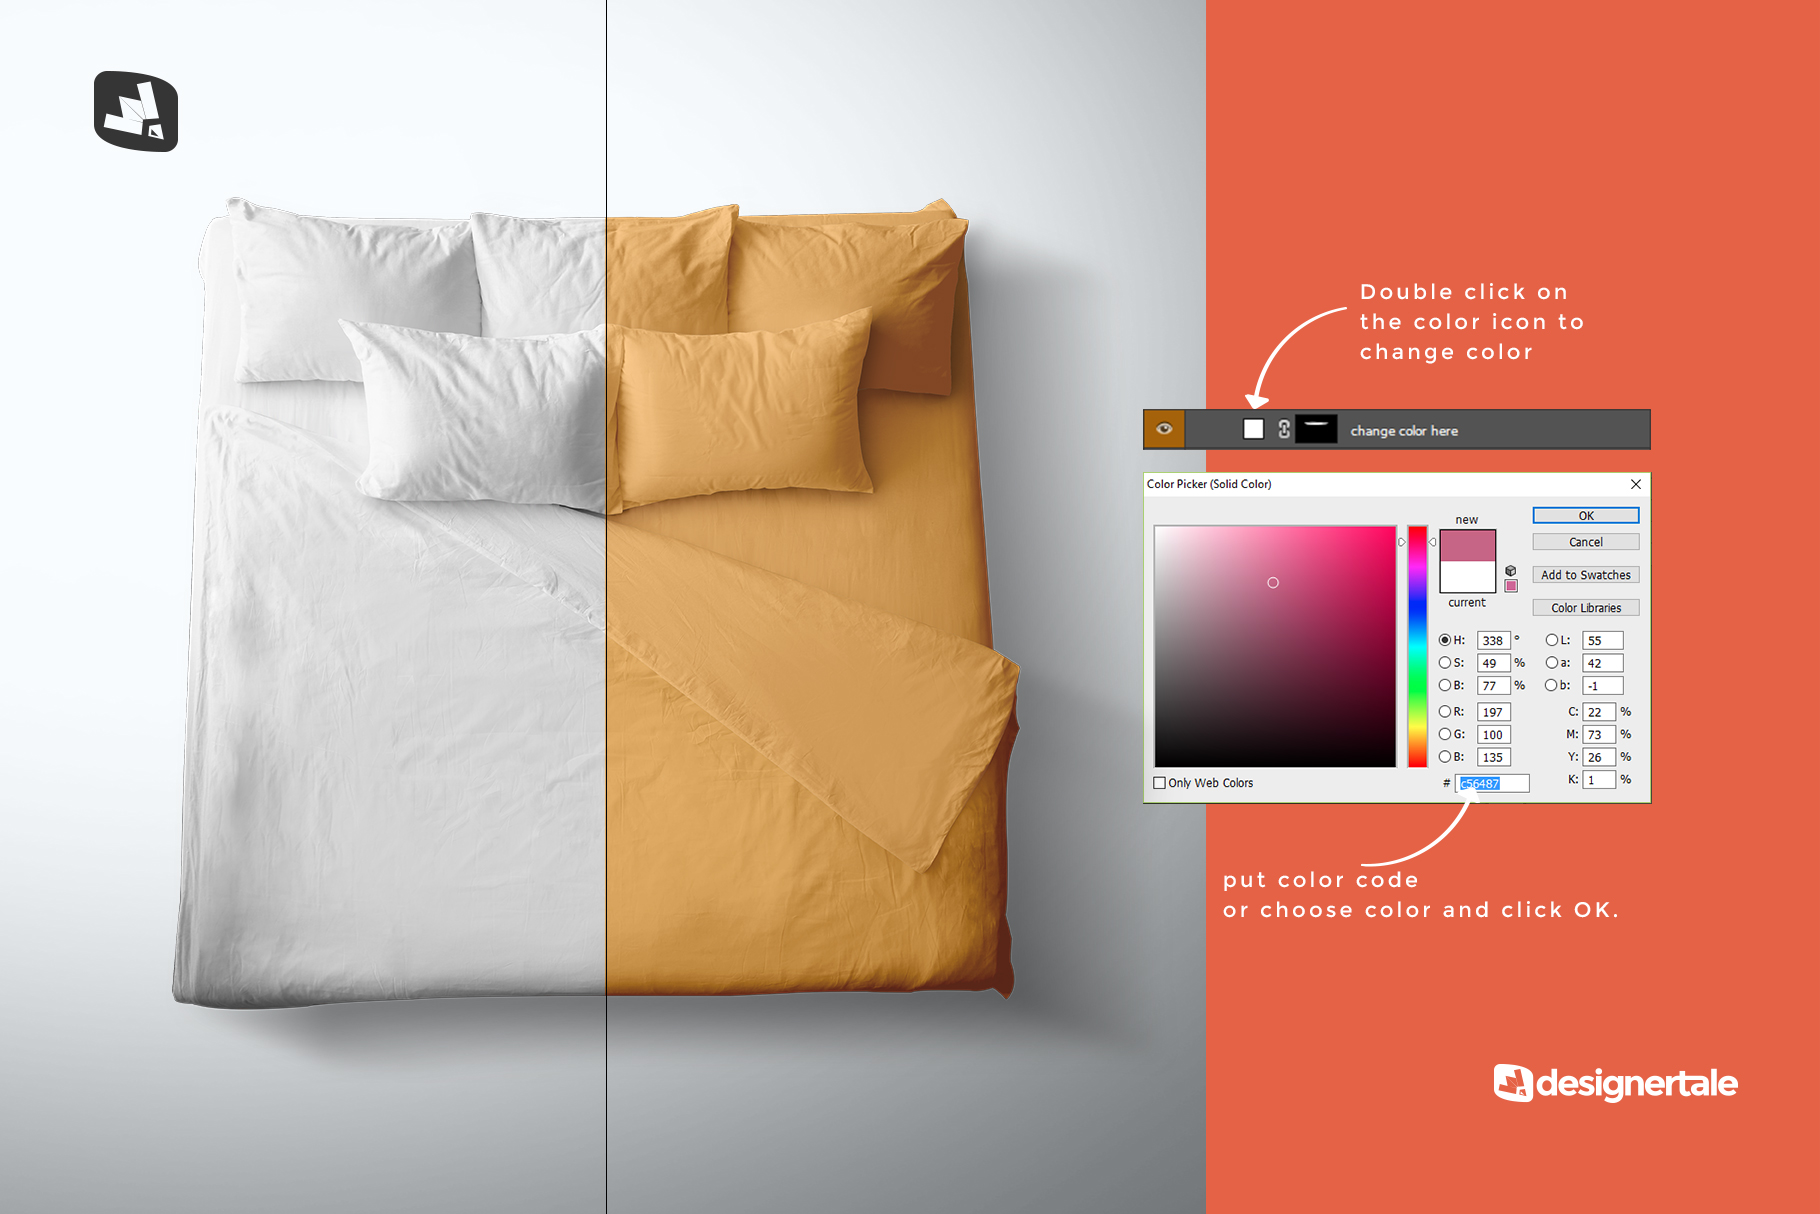 how to change color of the top view king size bed mockup